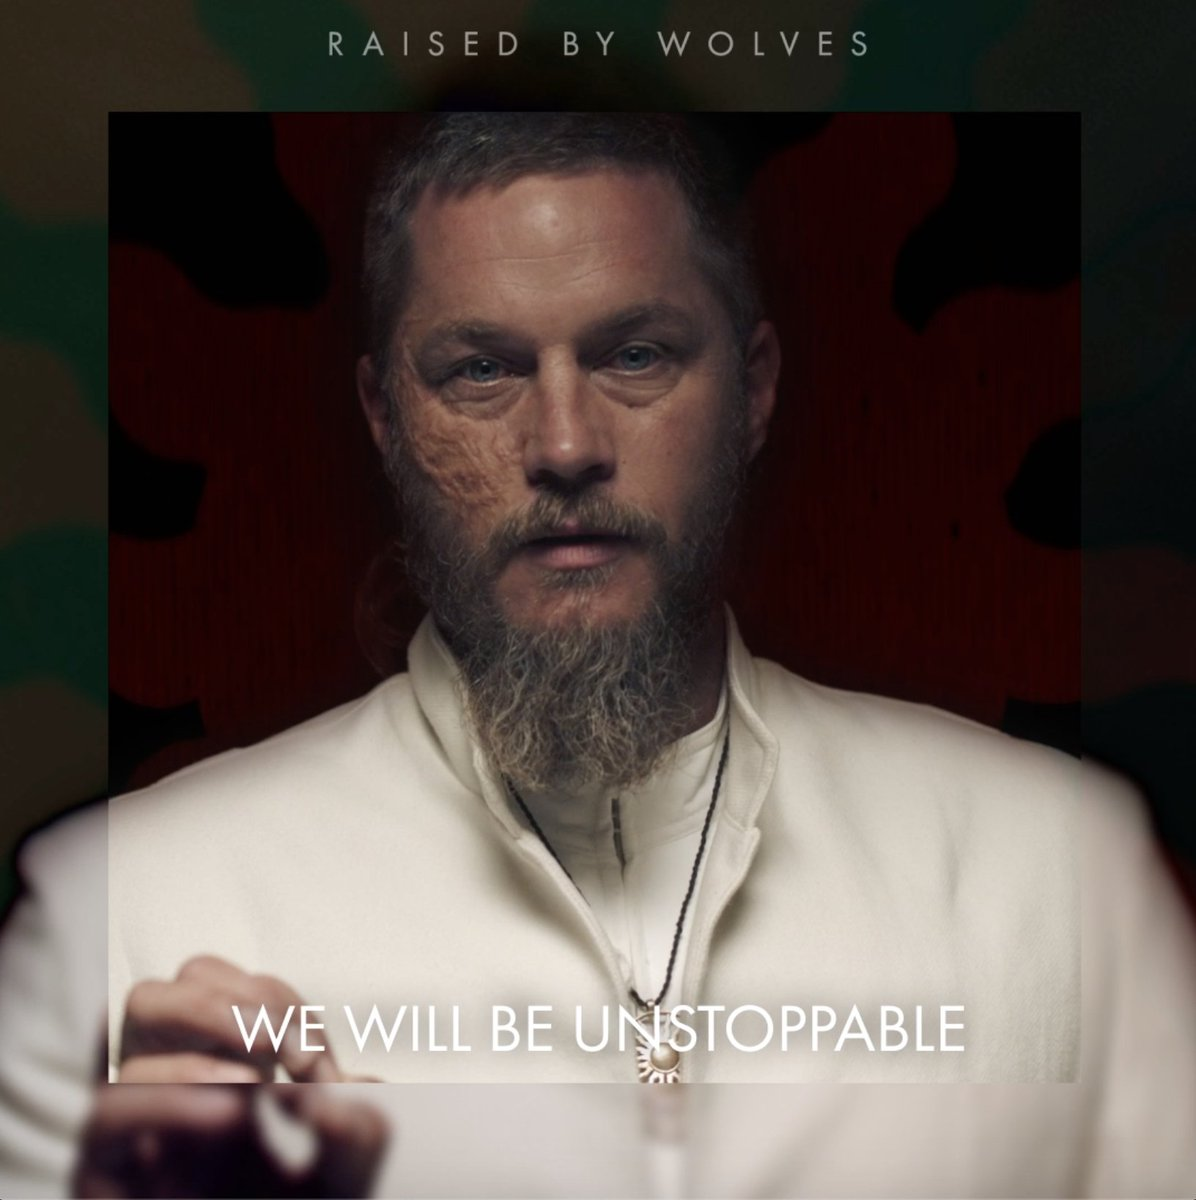 Our victory is destined. 🐺 @RaisedWolvesMAX is streaming September 3 on HBO Max. #RaisedByWolvesMax